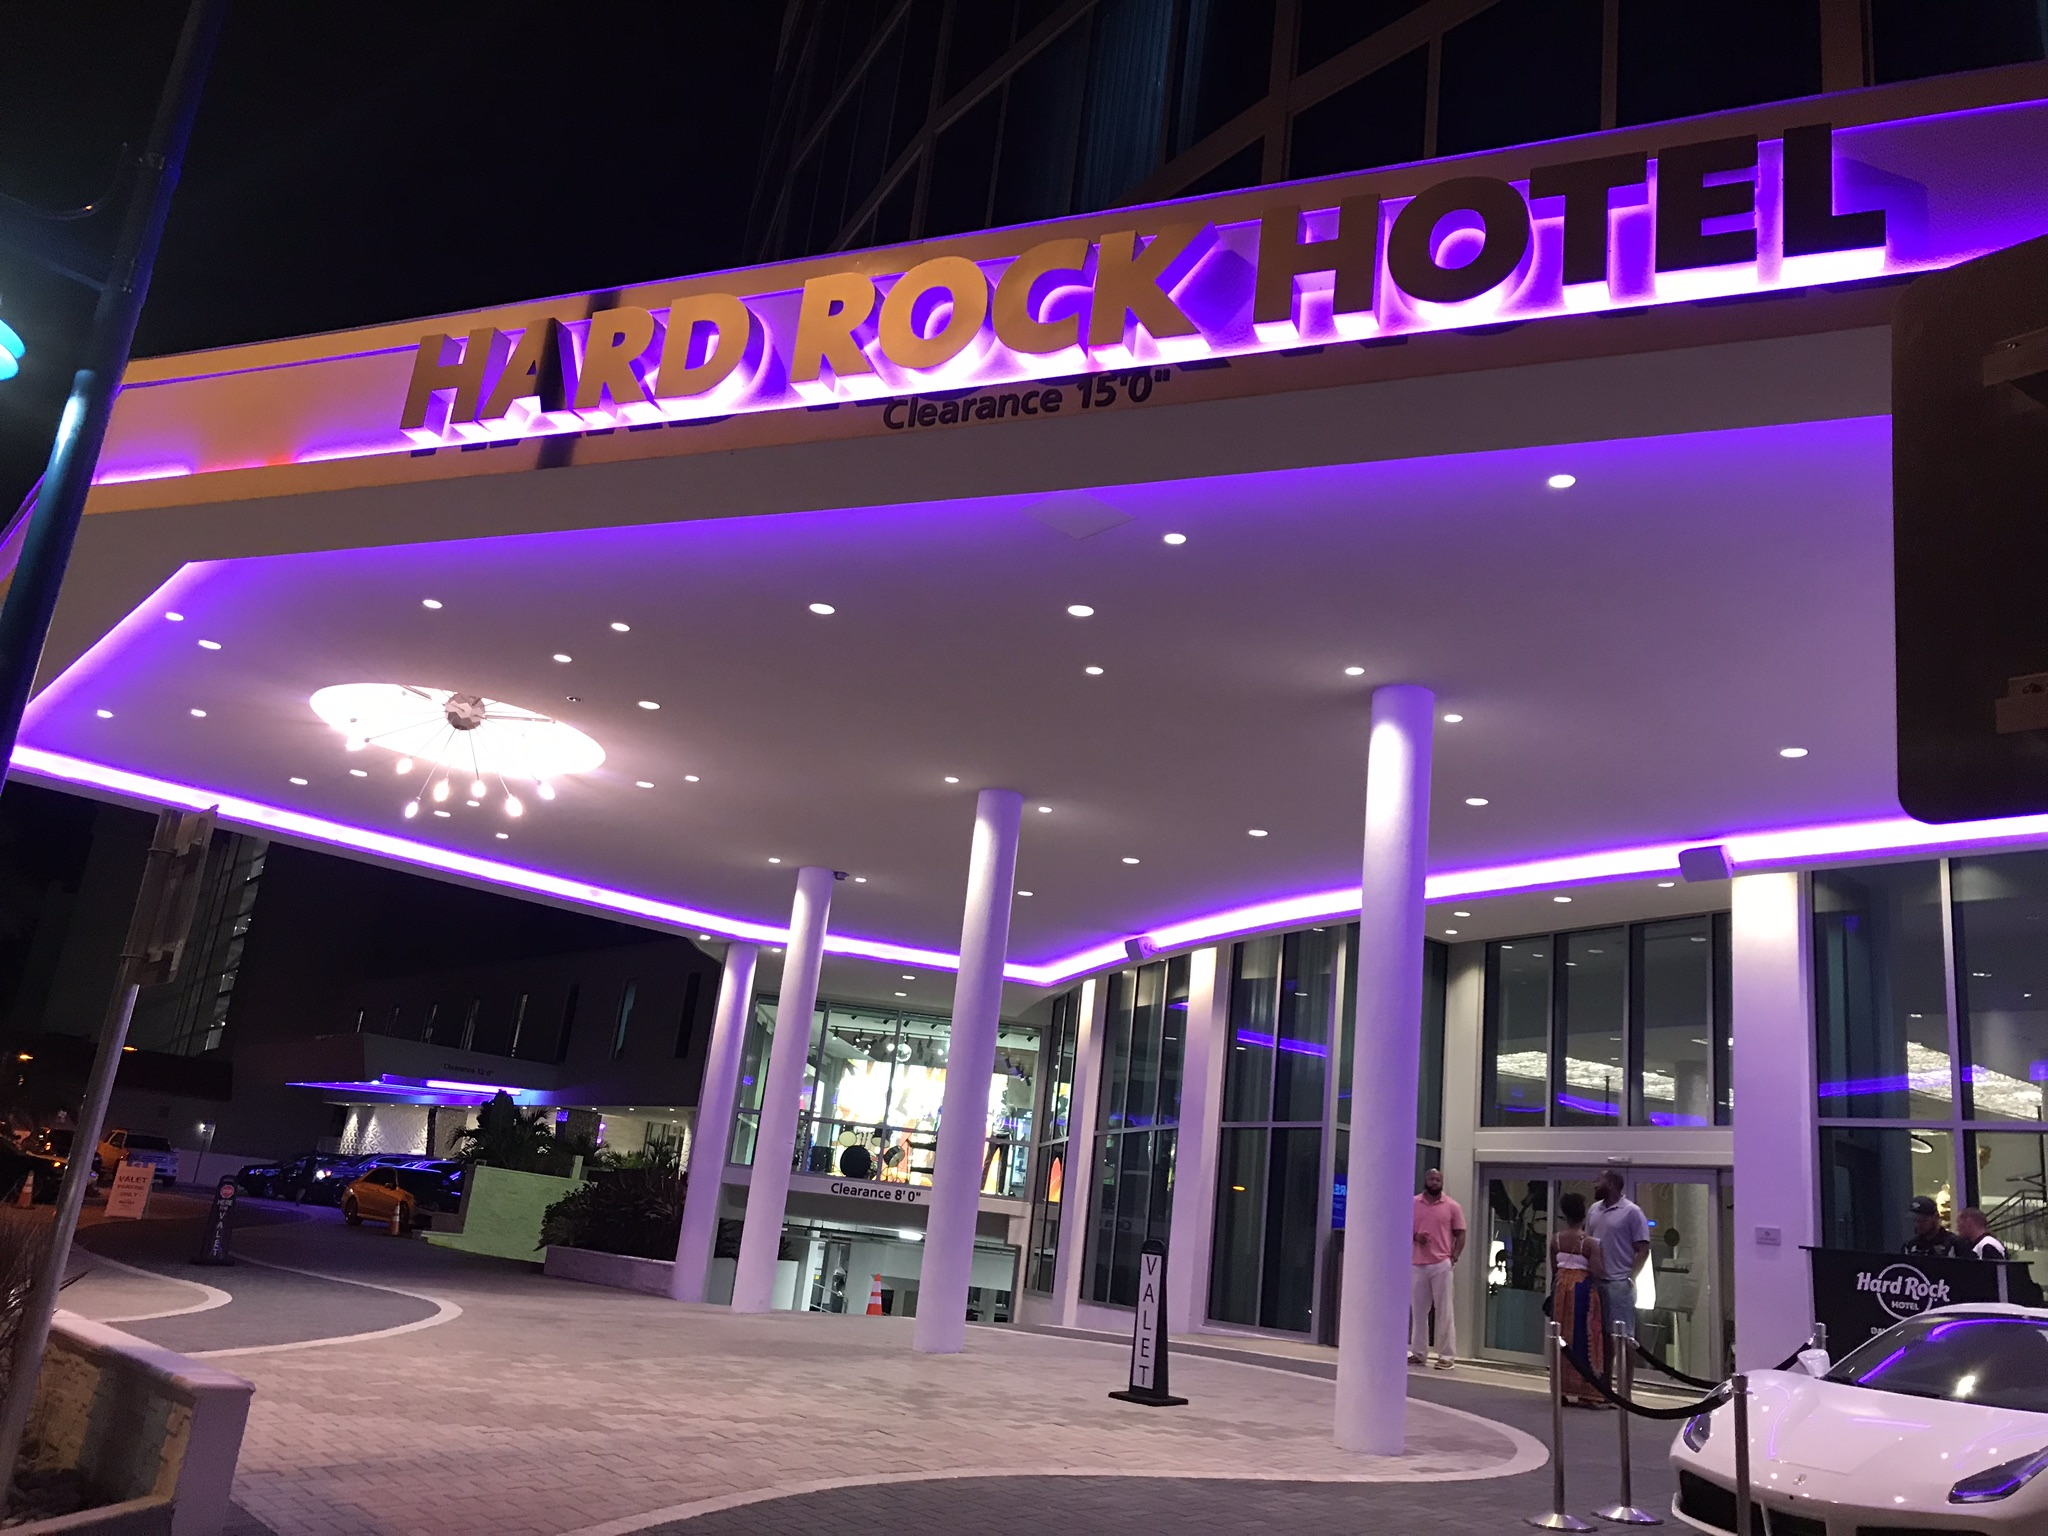 The Hard Rock Hotel Daytona Beach